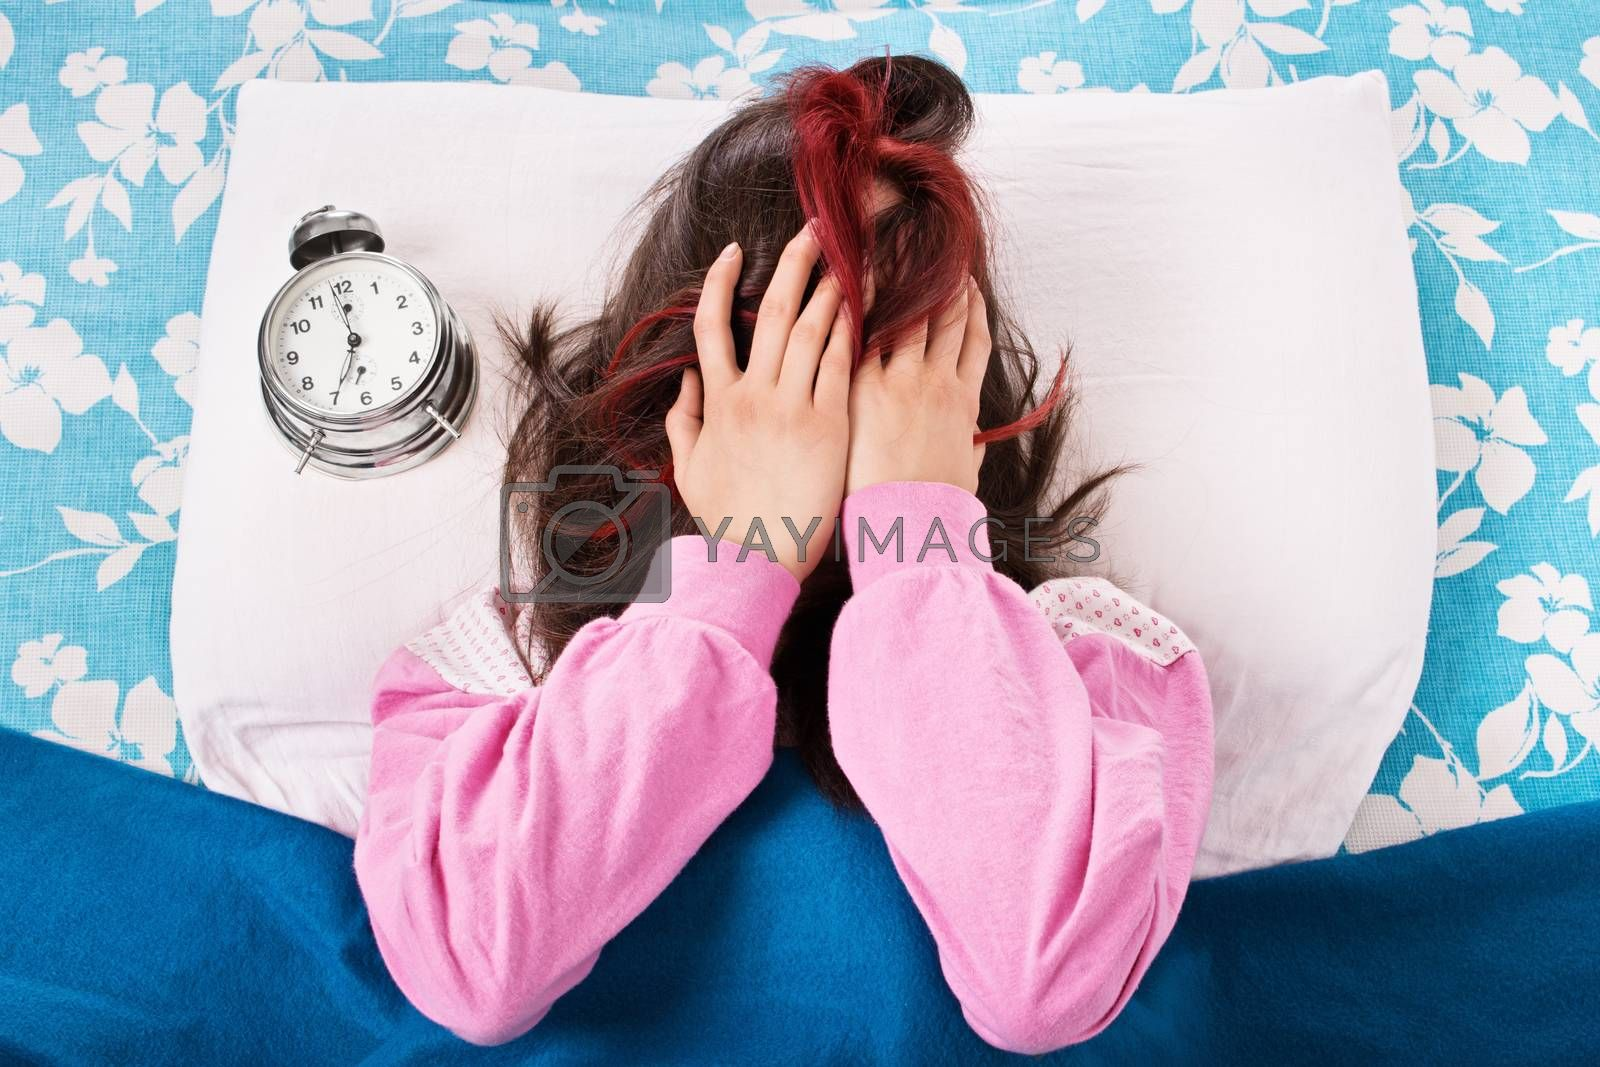 Young girl annoyed by the alarm clock by Mendelex